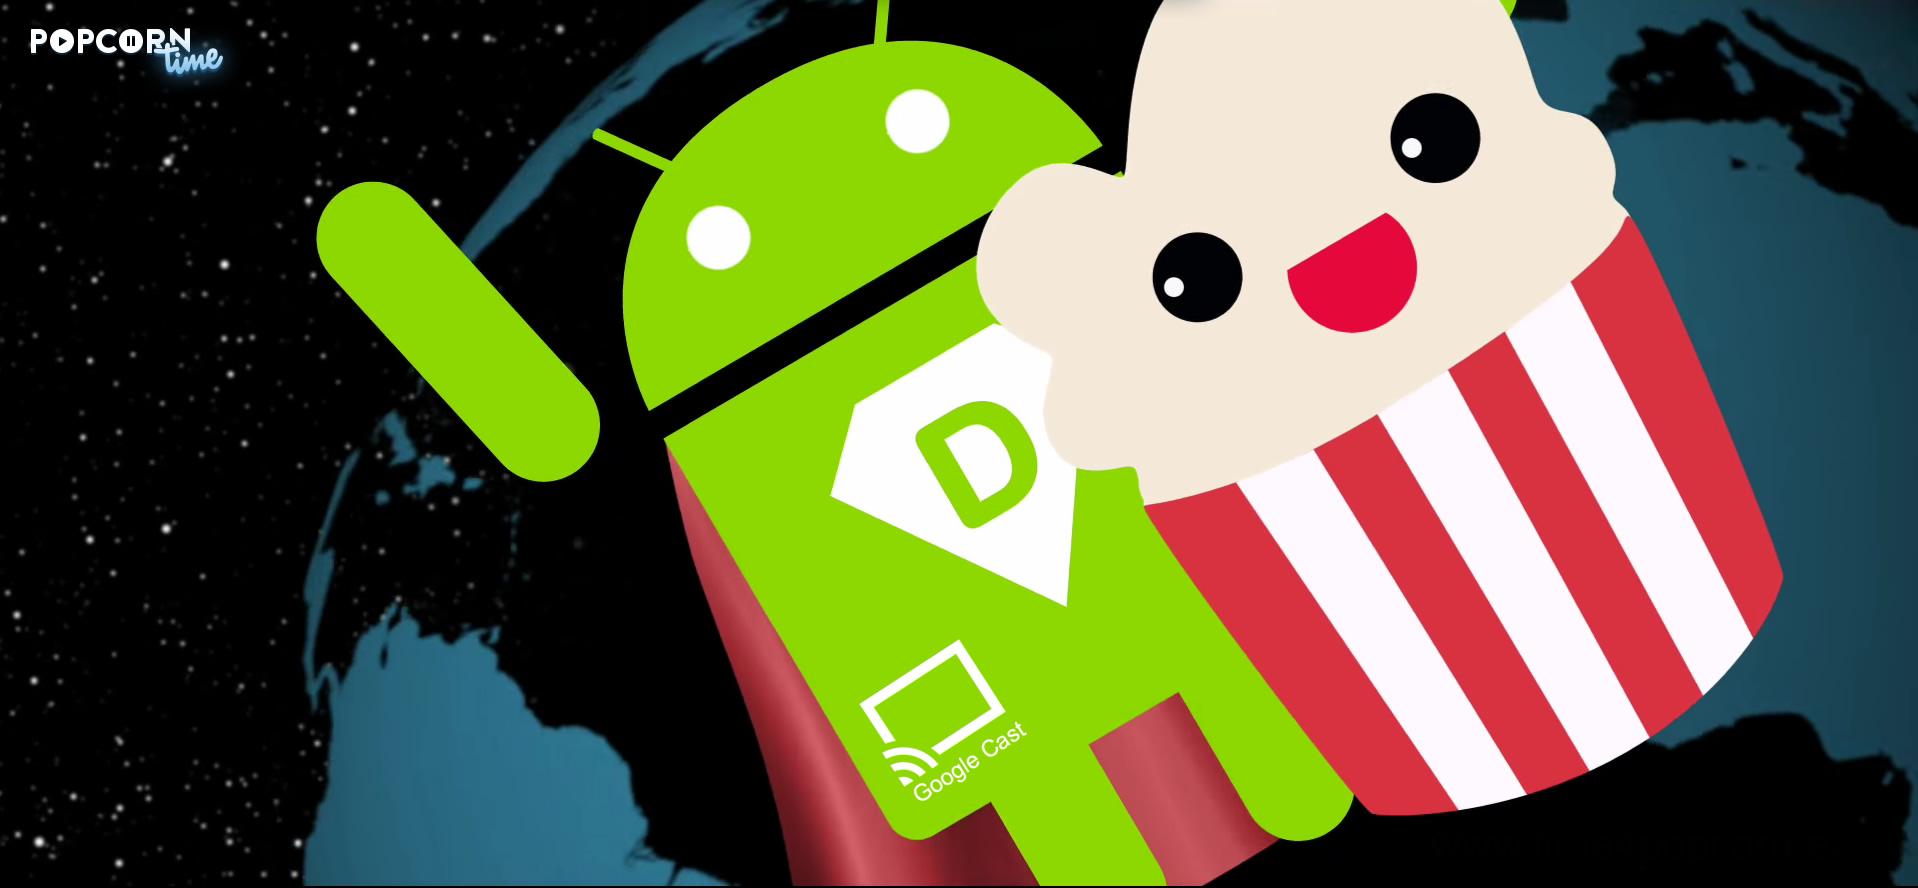 Android en Popcorn Time